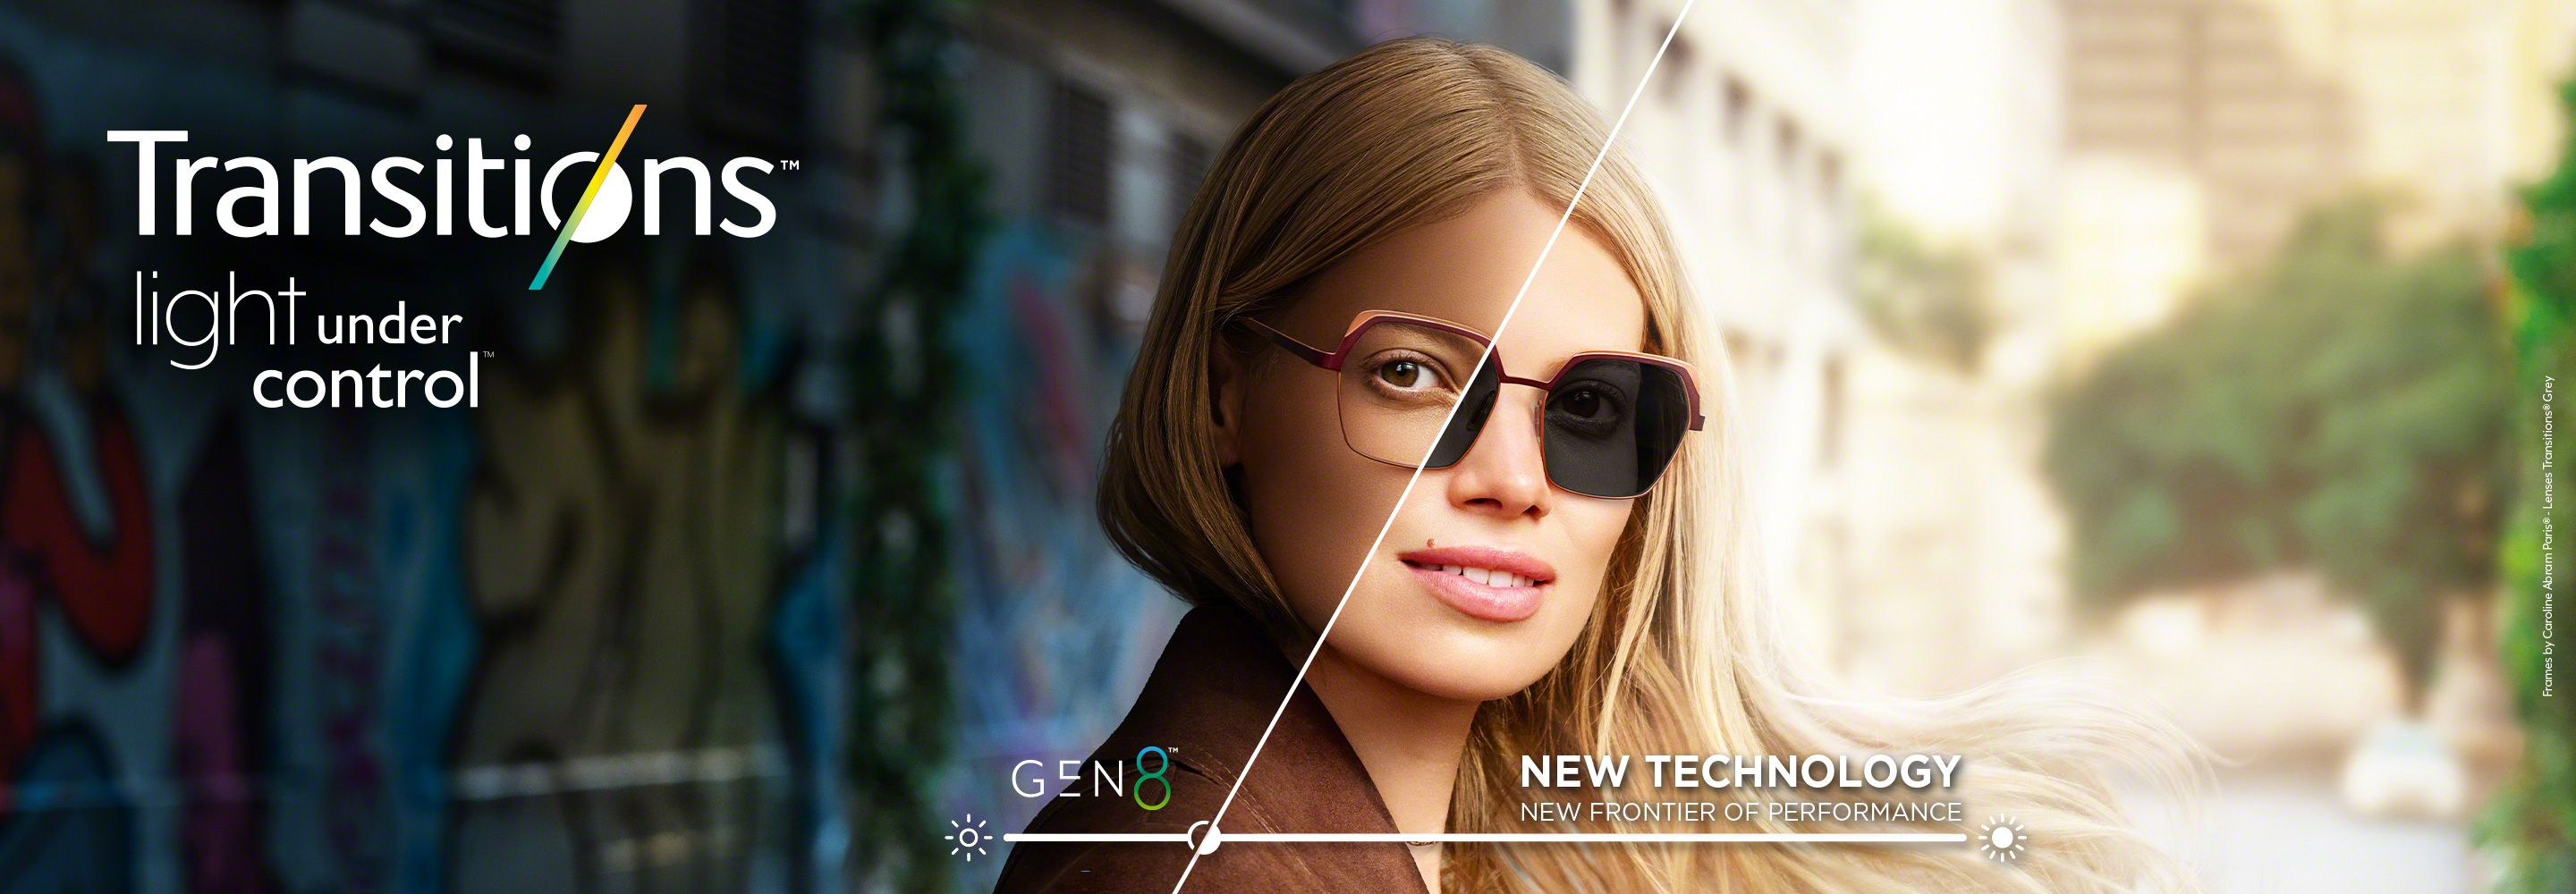 Eyewear: Glasses, Frames, Sunglasses & More at LensCrafters